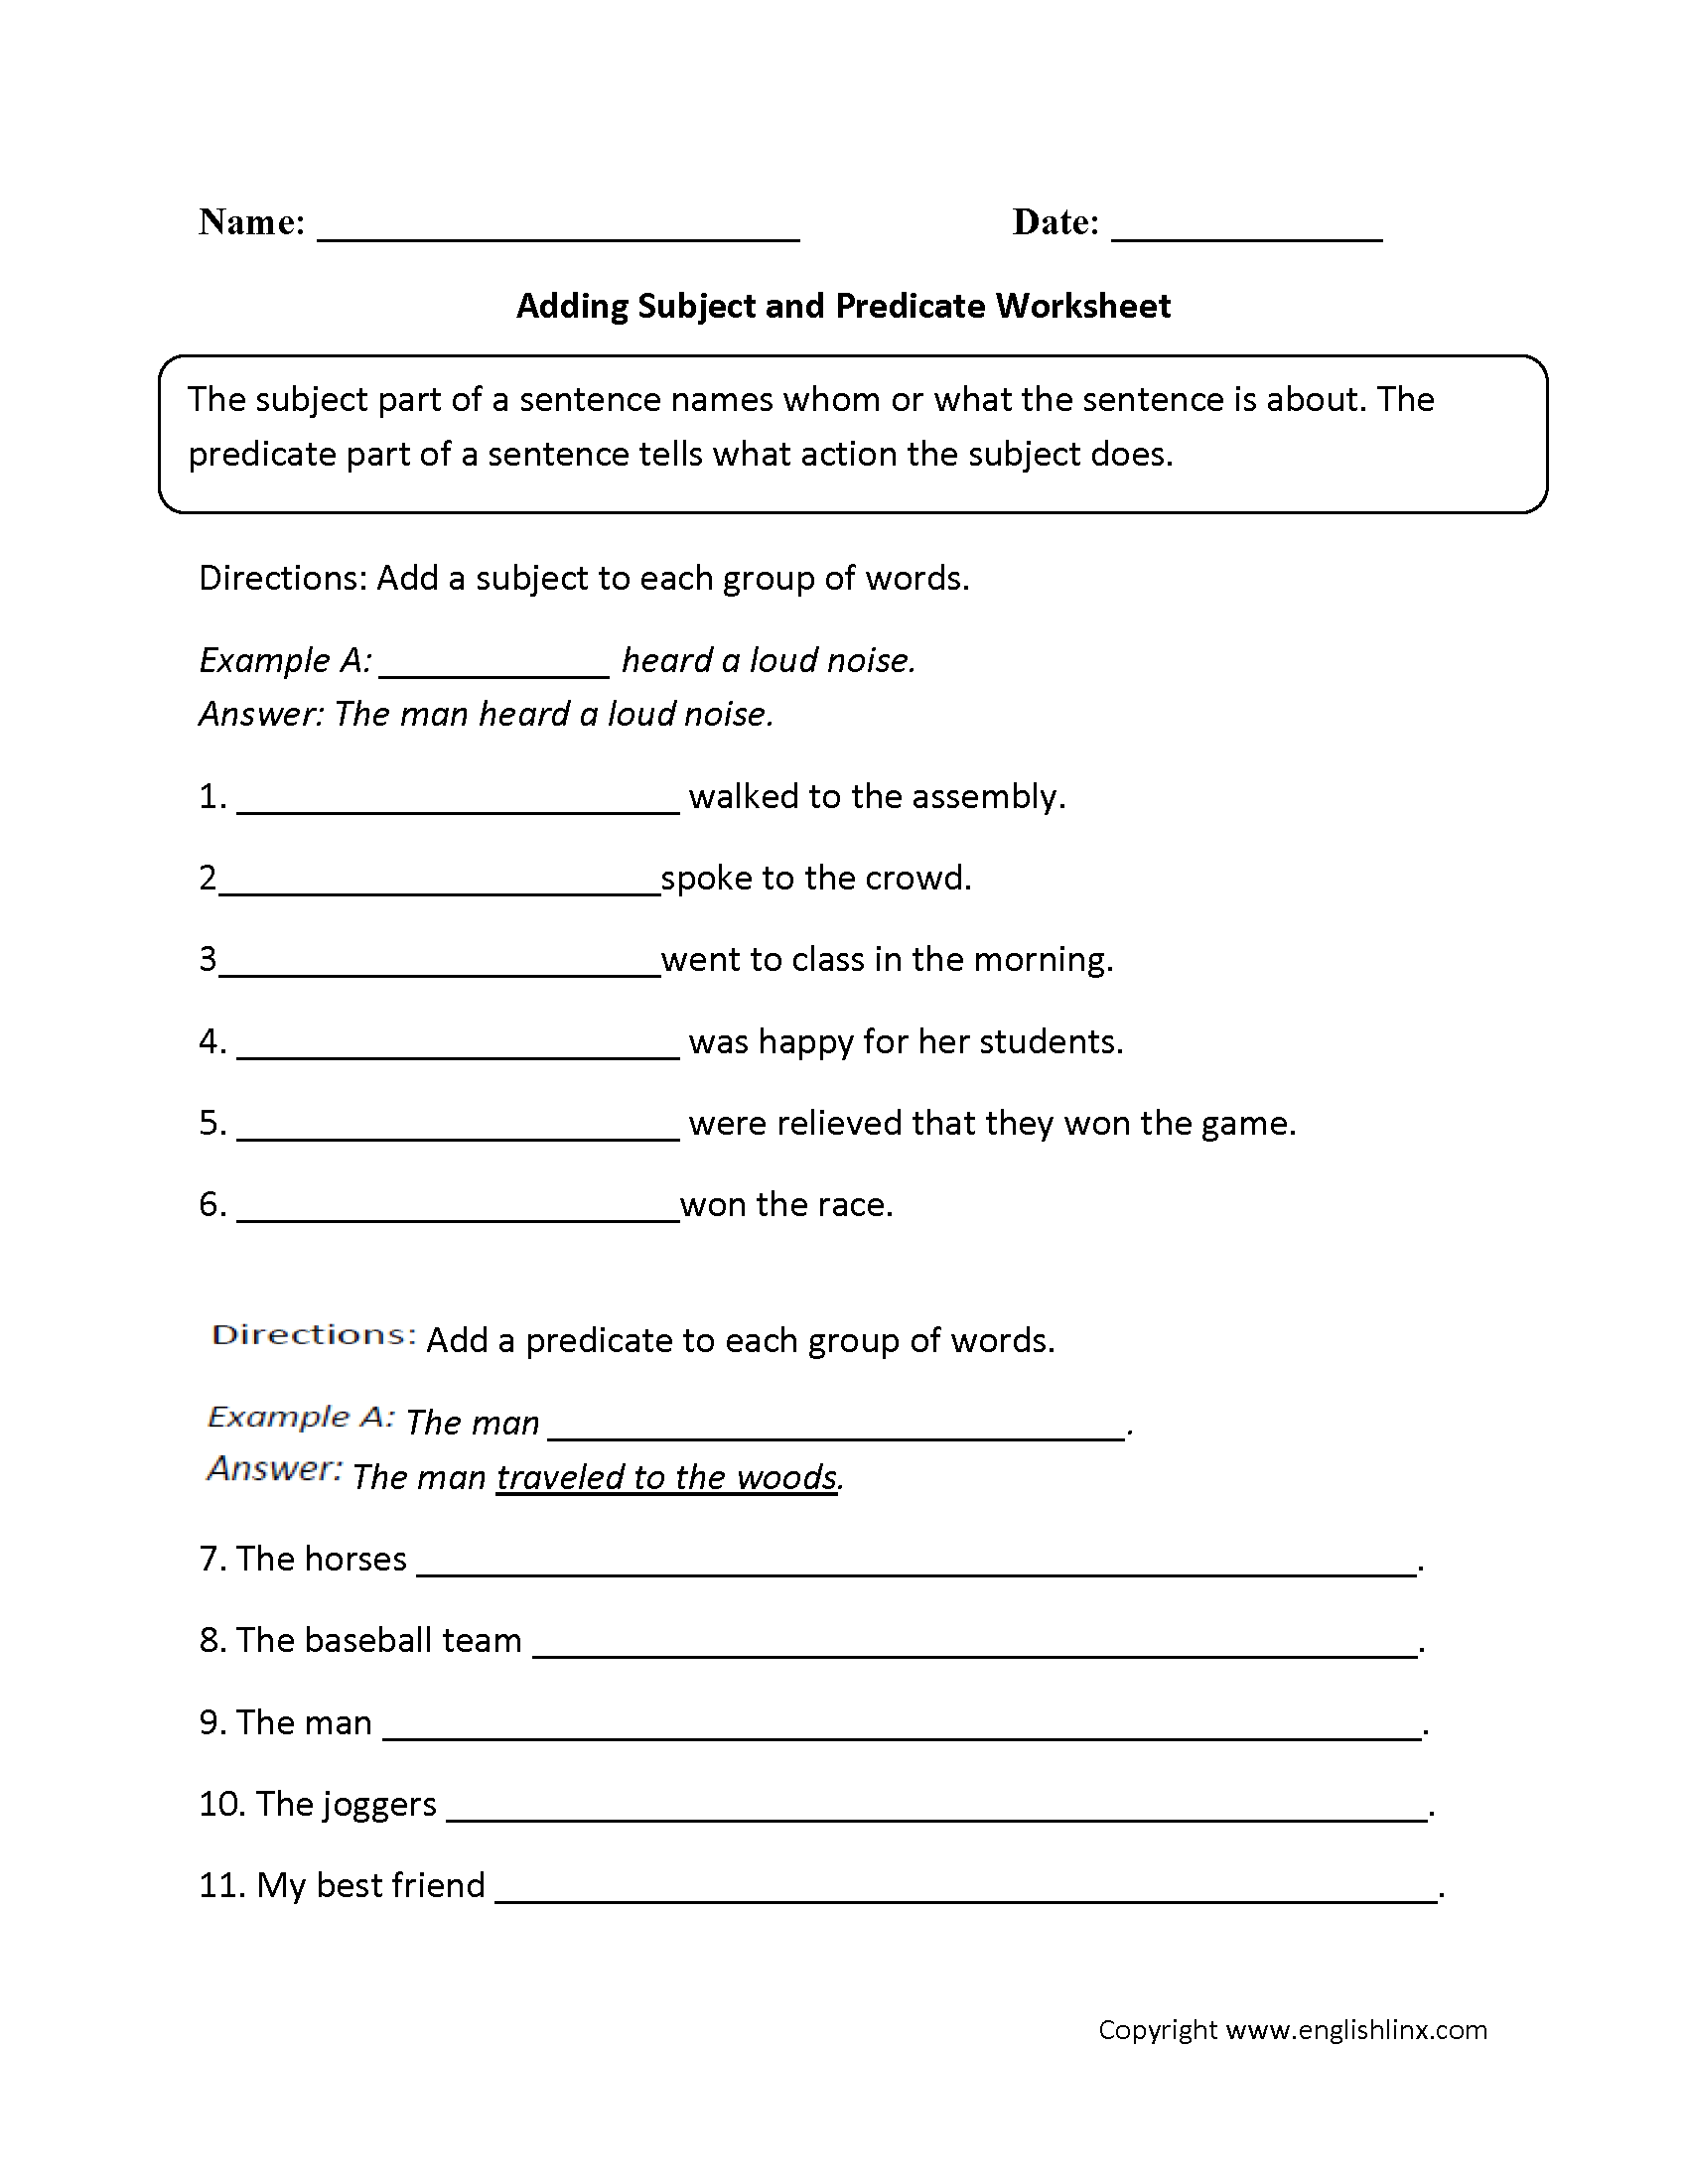 worksheet English Grammar For Adults Worksheets parts of a sentence worksheets subject and predicate adding predicateworksheet